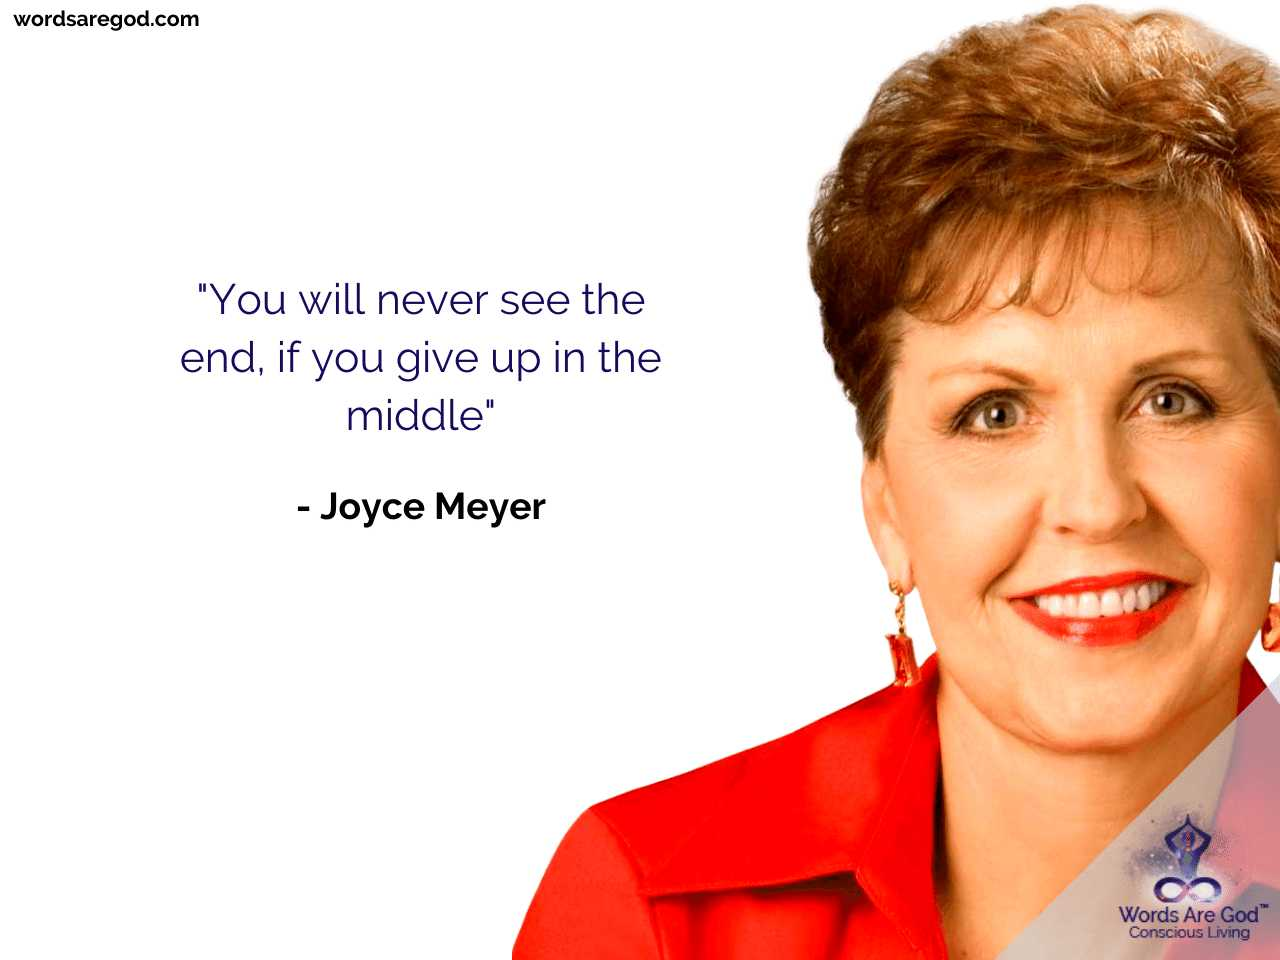 Joyce Meyer Inspirational Quote